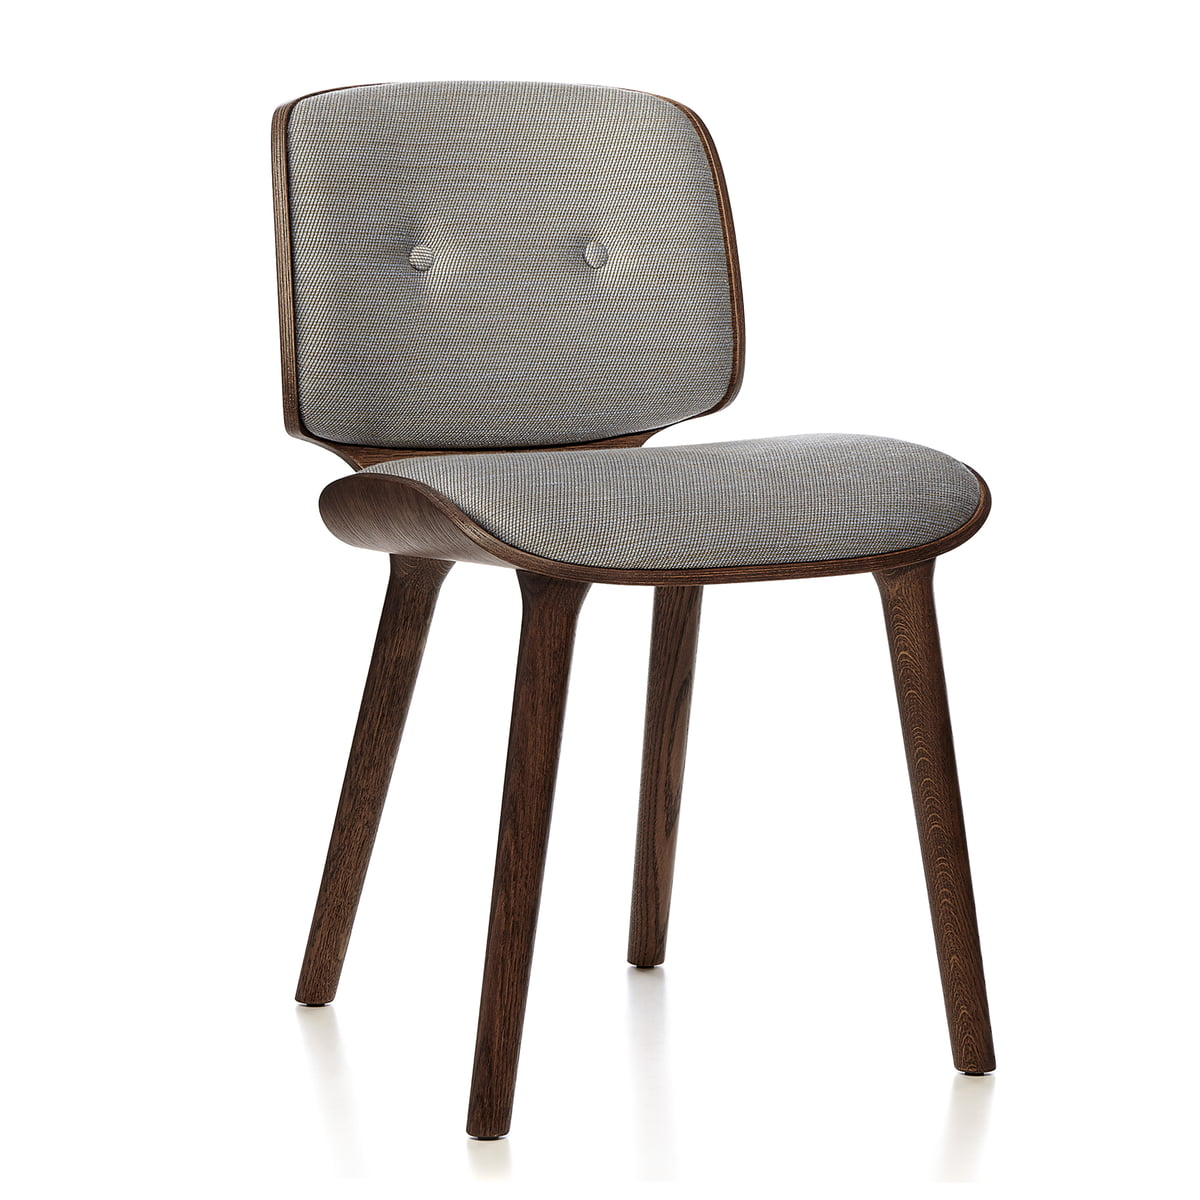 Best Picture Dining Chair Online